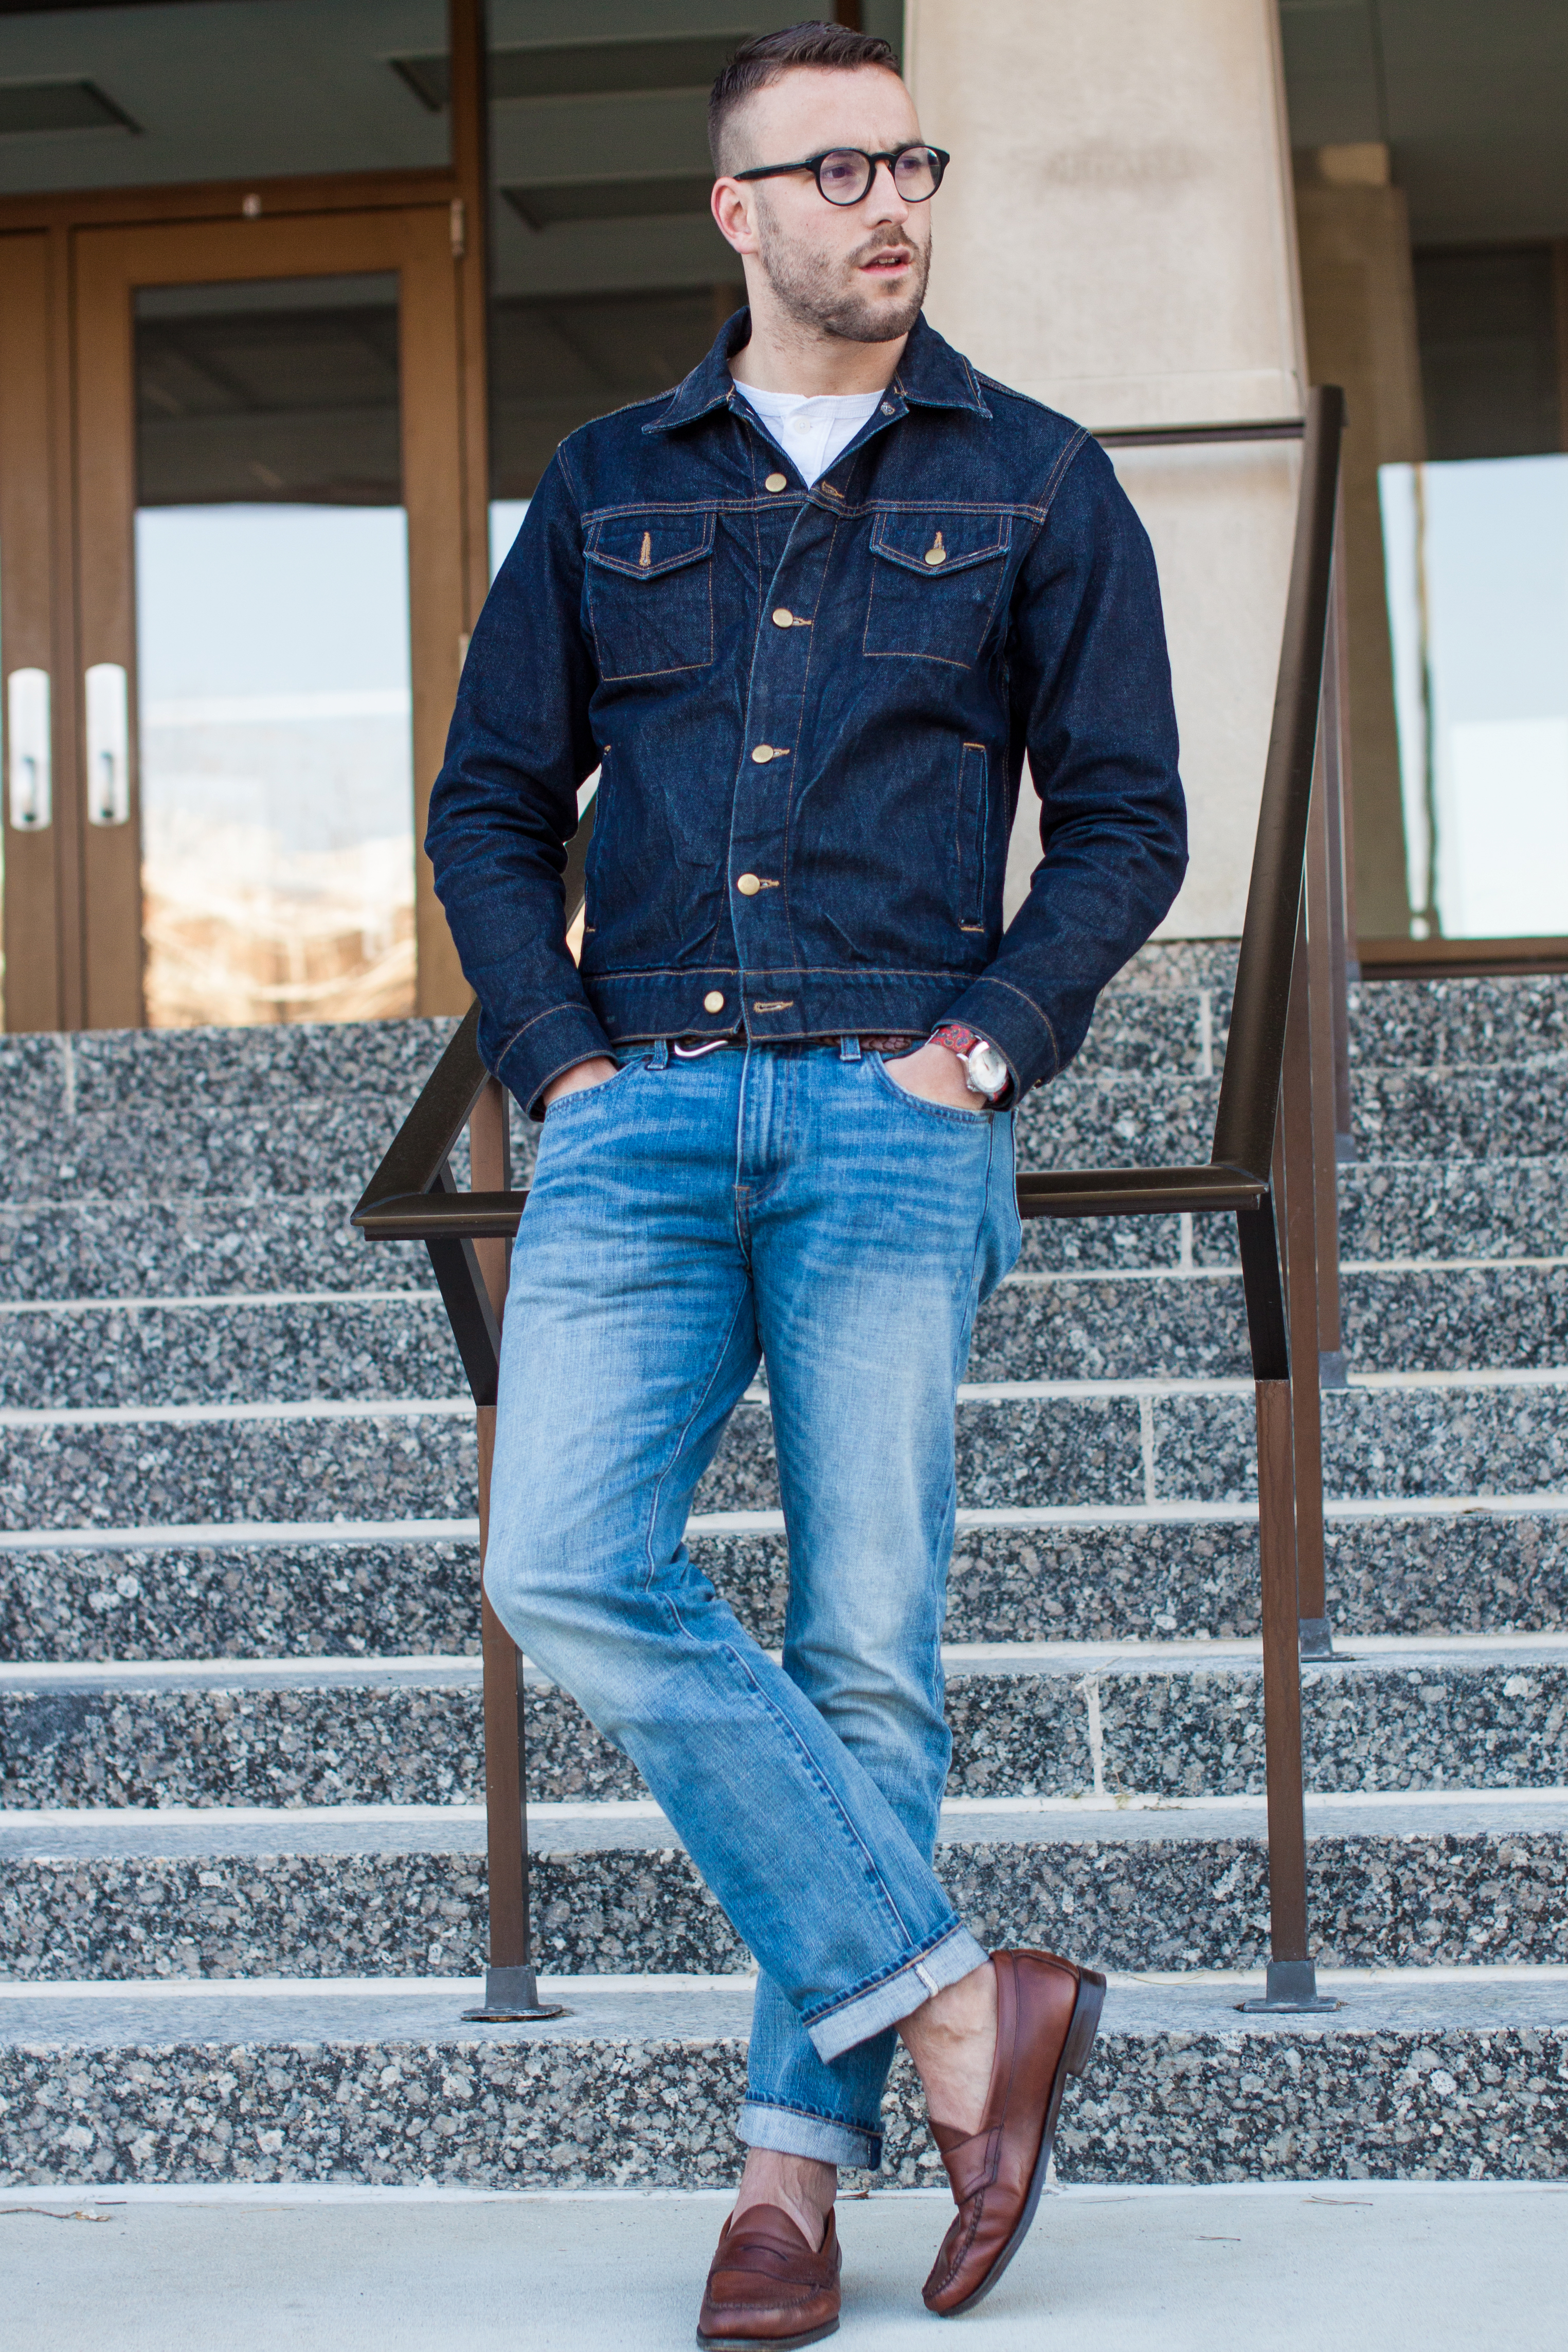 cbf48066aca The denim jacket can also be styled with an equally rugged henley